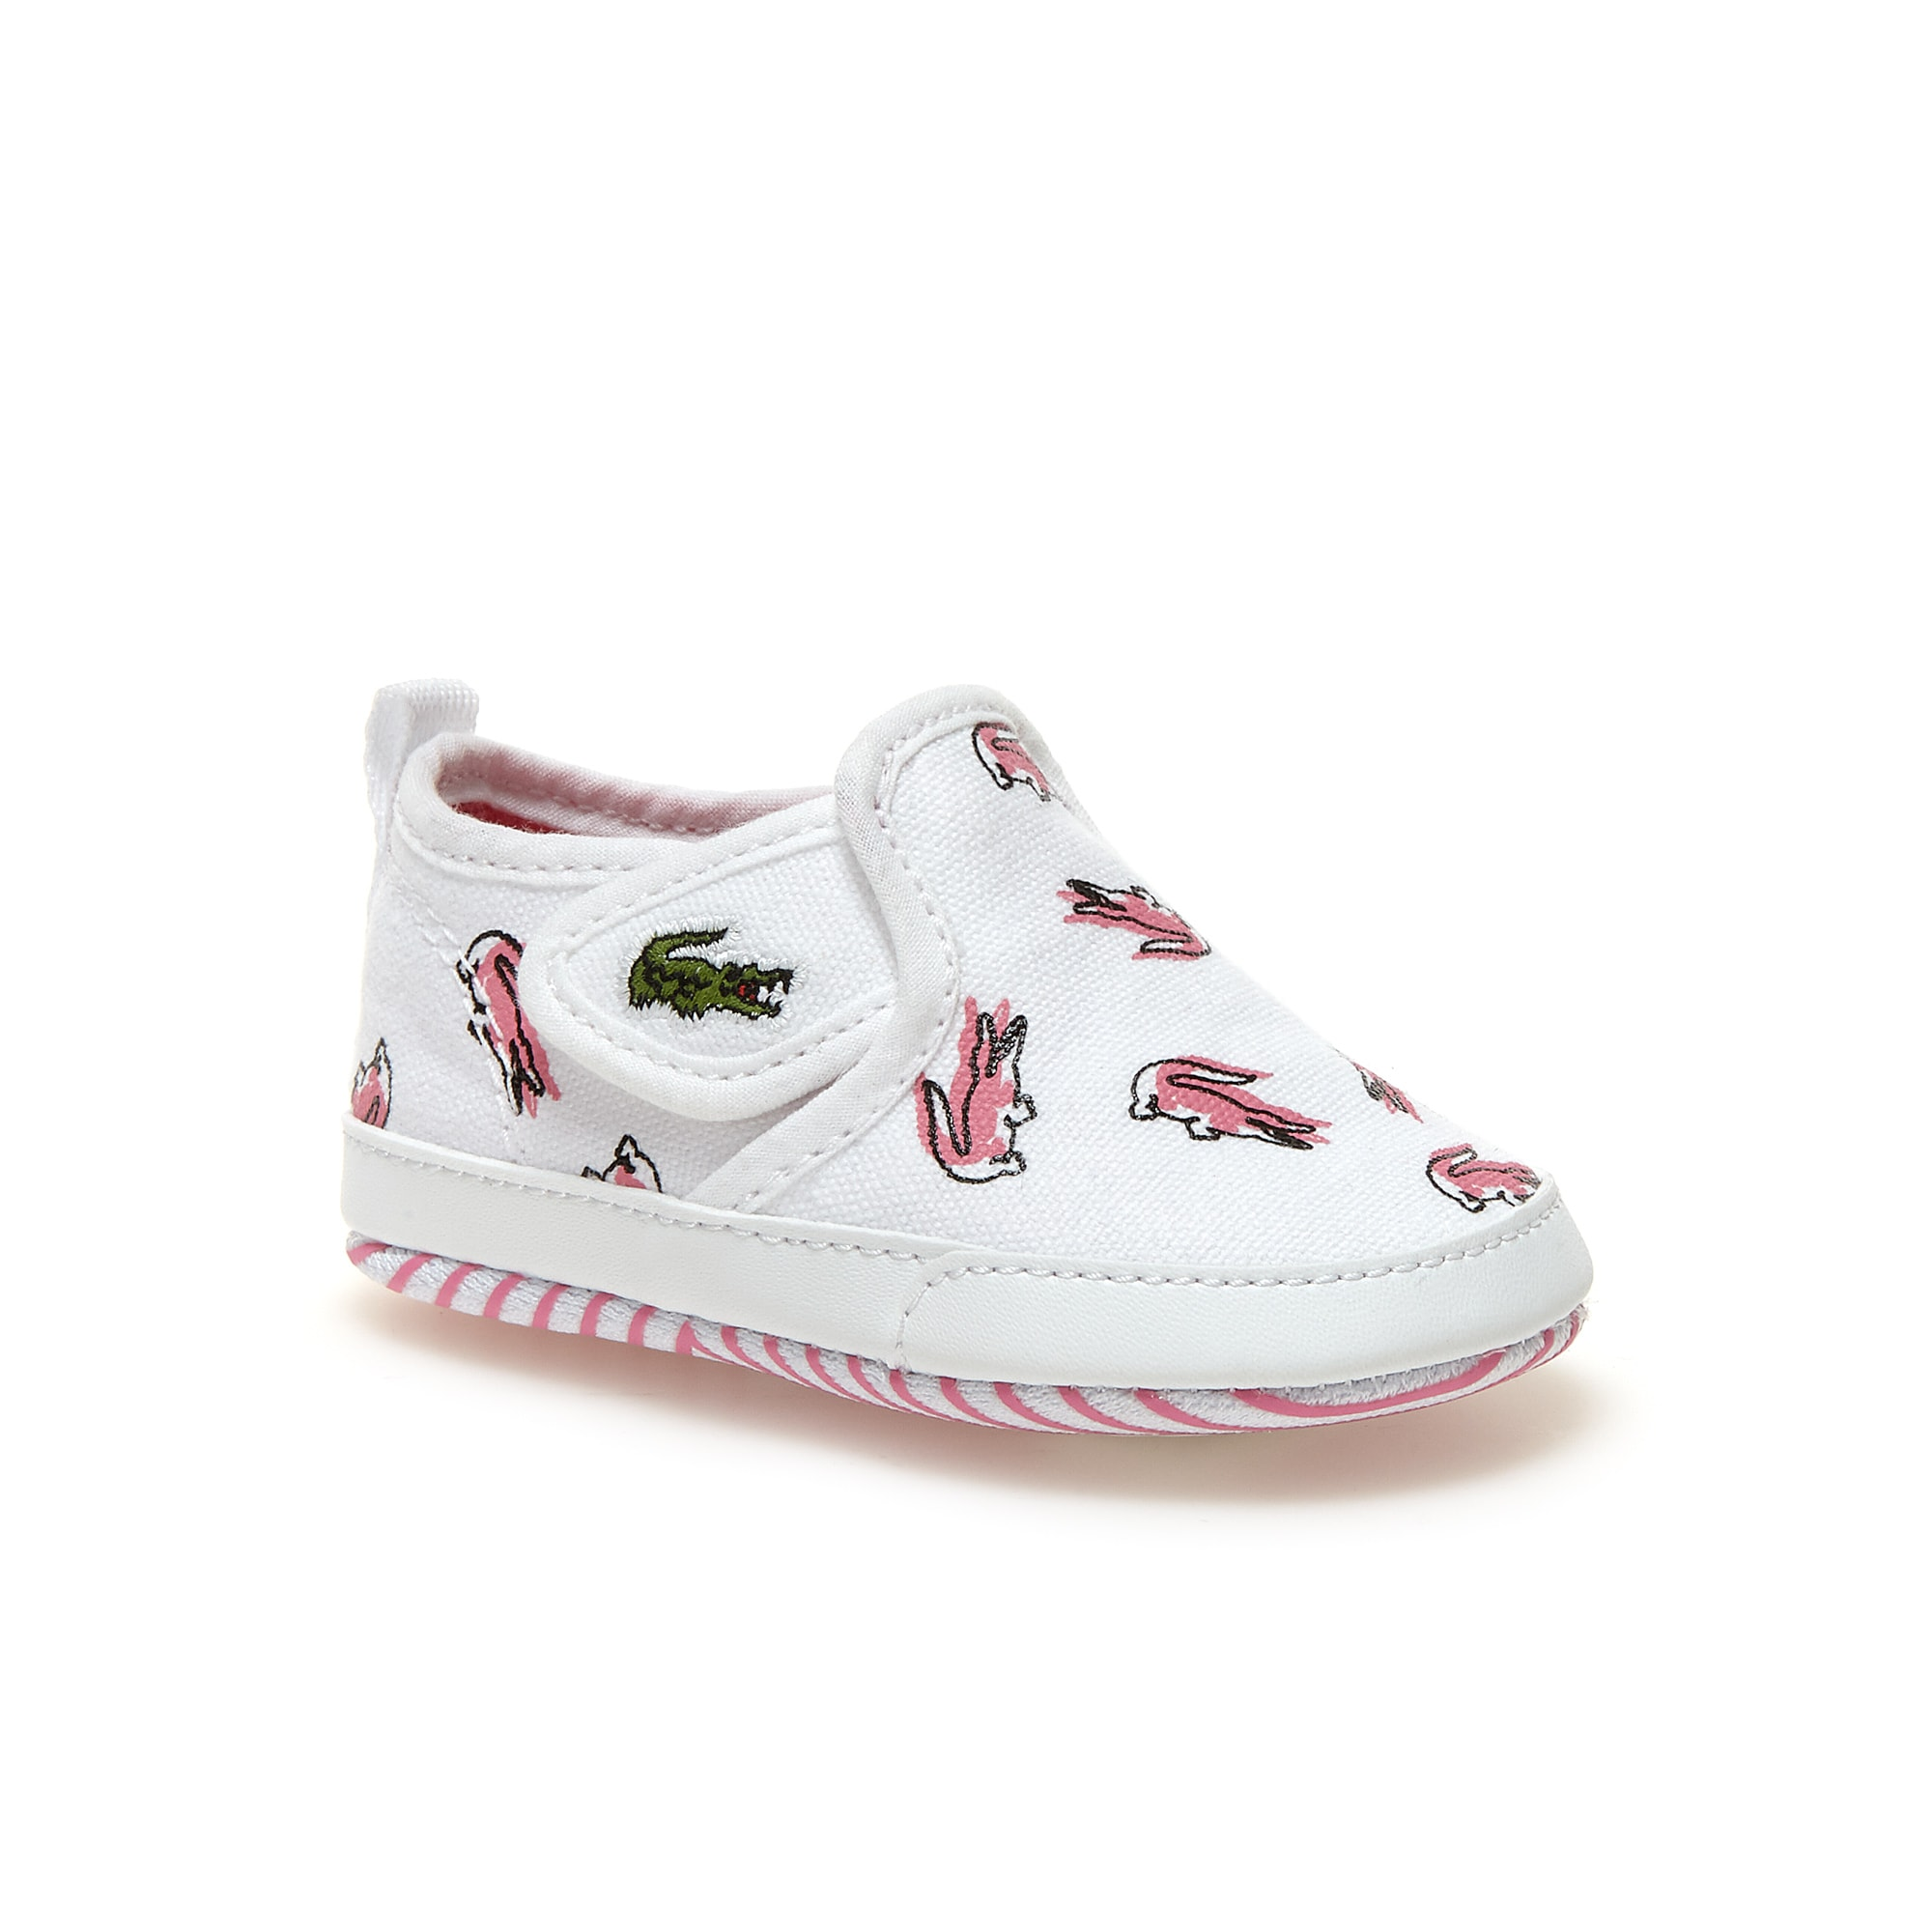 Kids' Gazon Crib Canvas Slip-ons